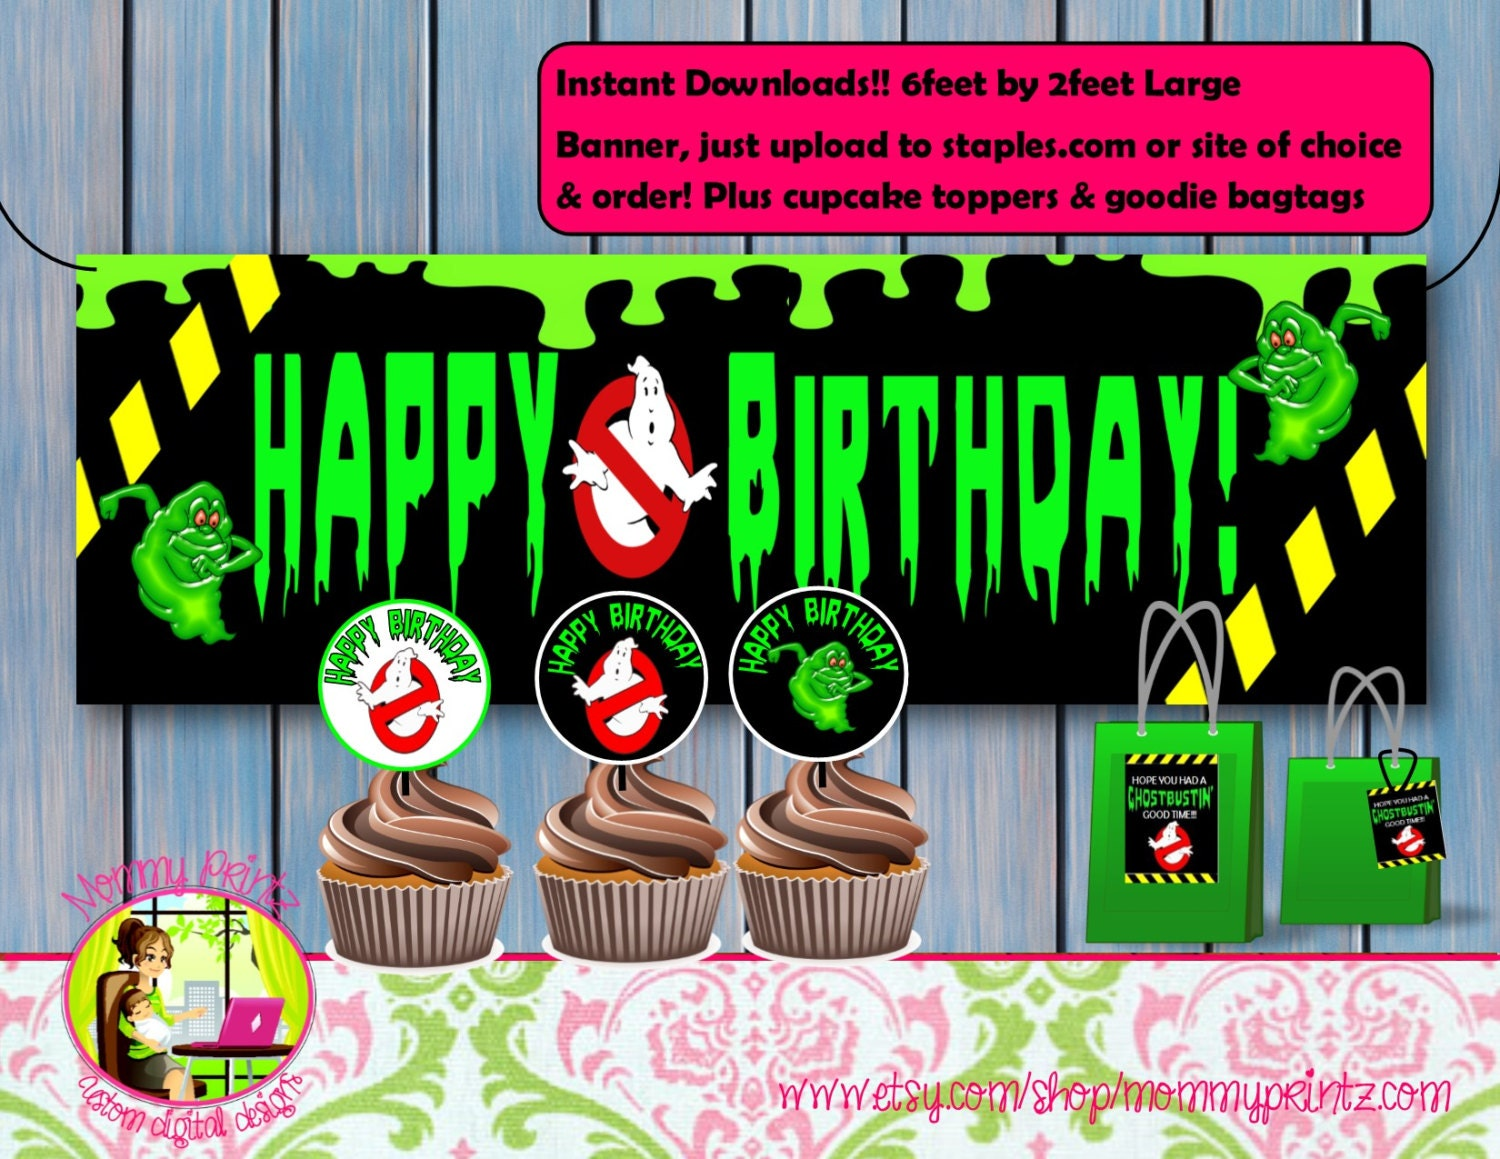 Ghostbusters Banner Ghostbusters Birthday Ghostbuster Goodie